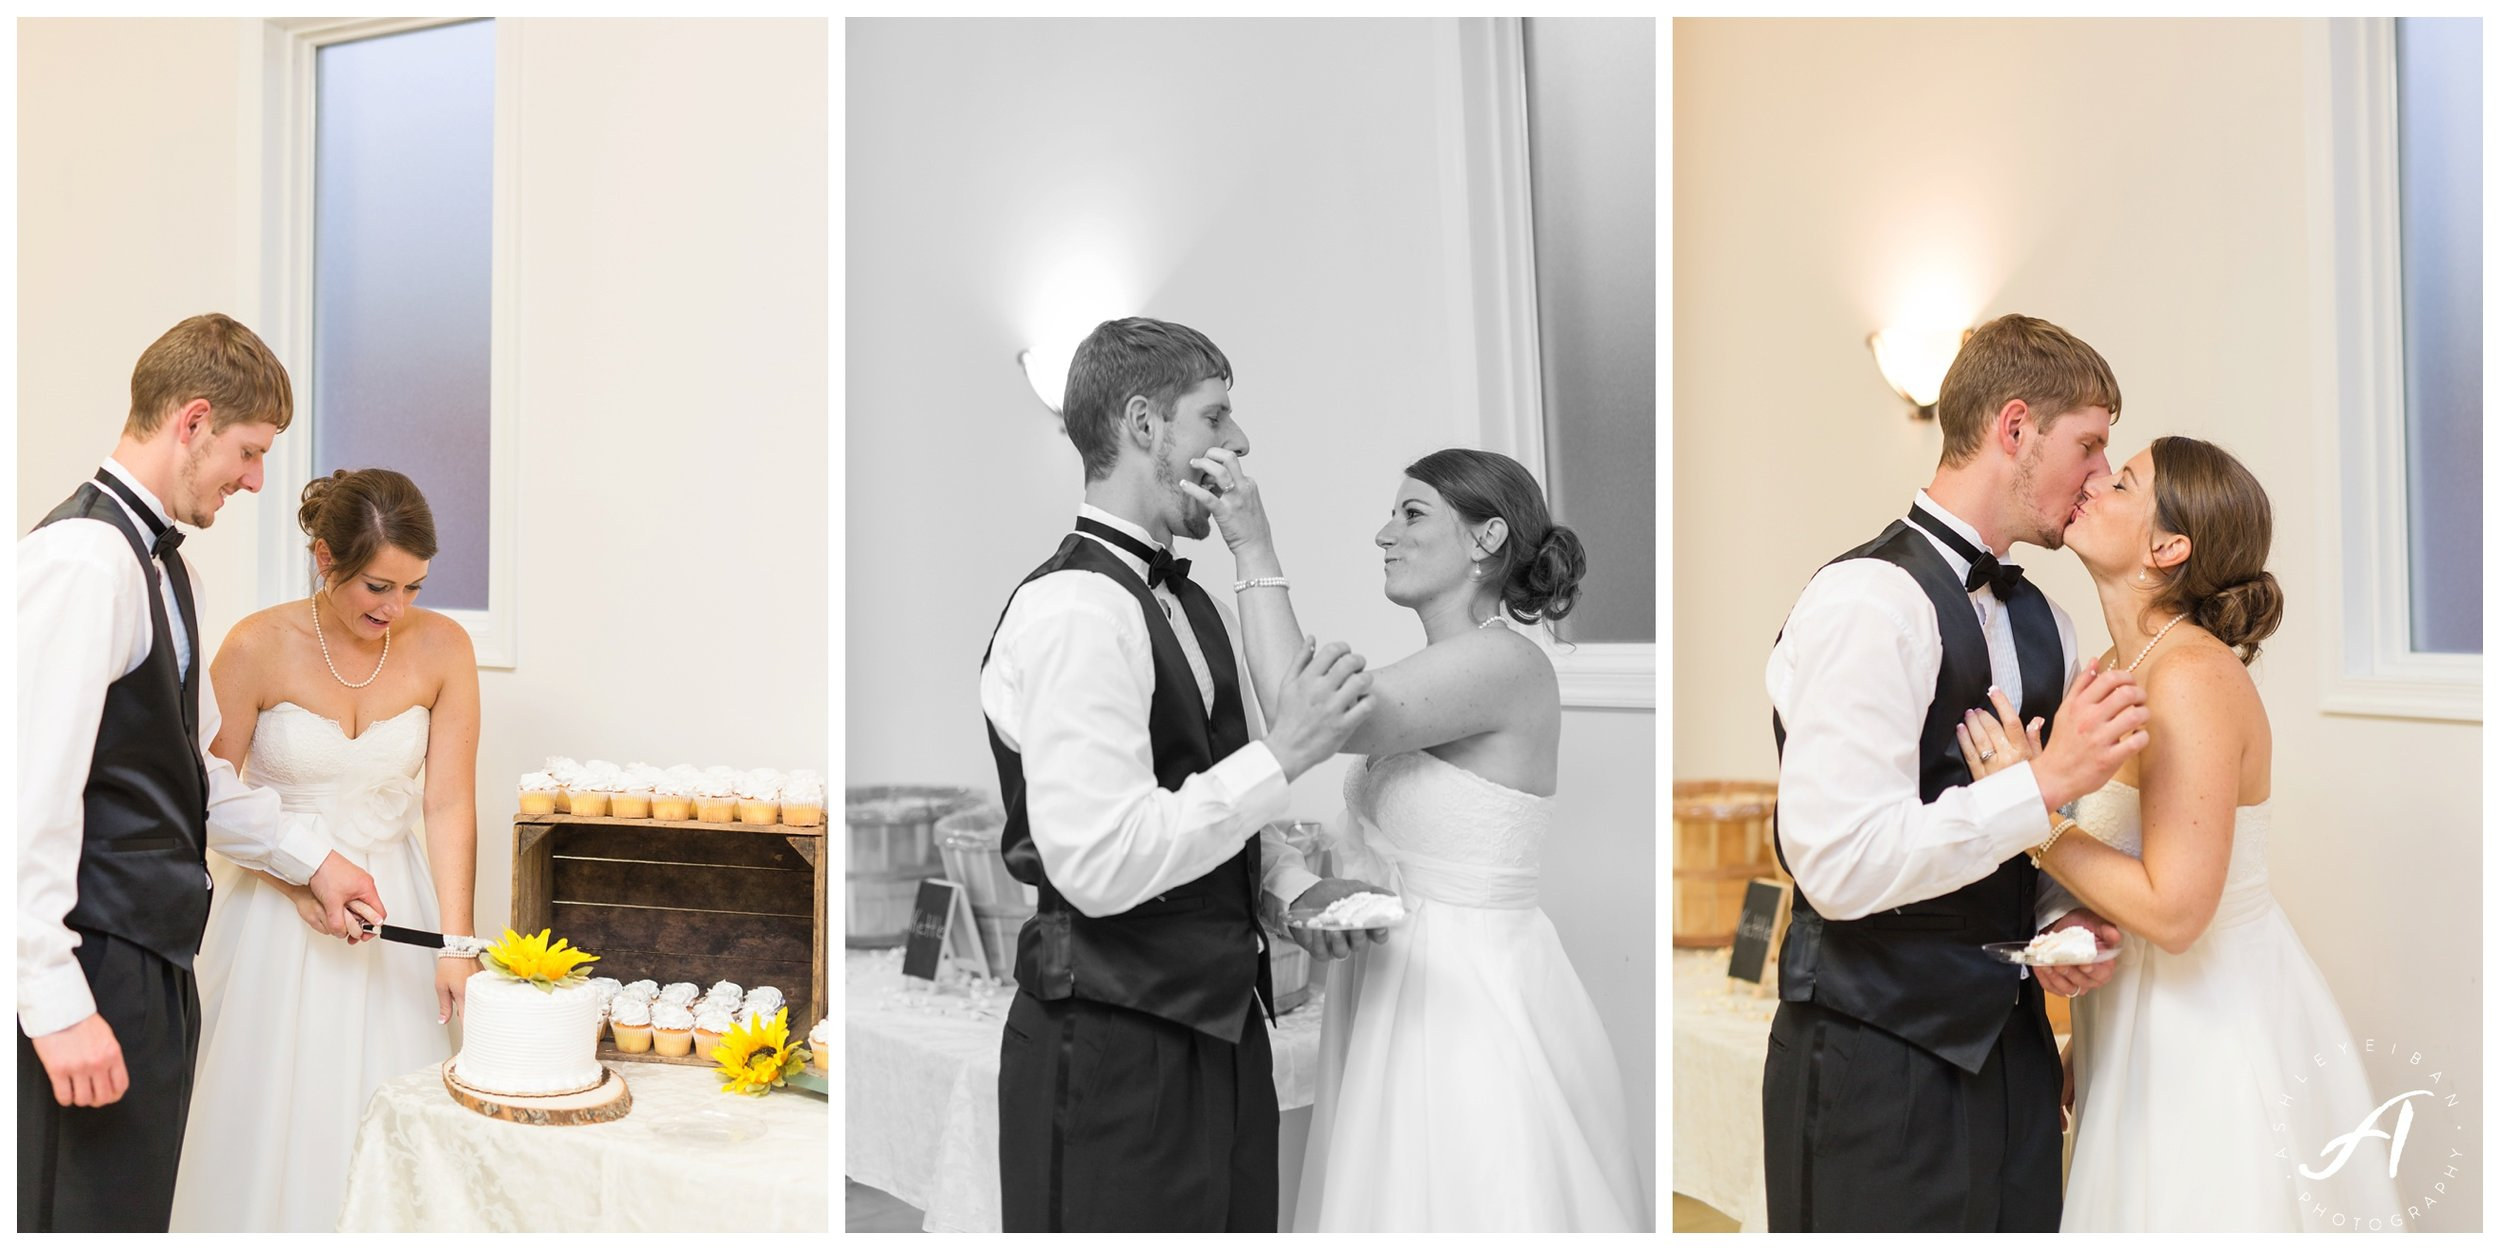 Staunton Church Wedding || Central Virginia Wedding Photographer || www.ashleyeiban.com